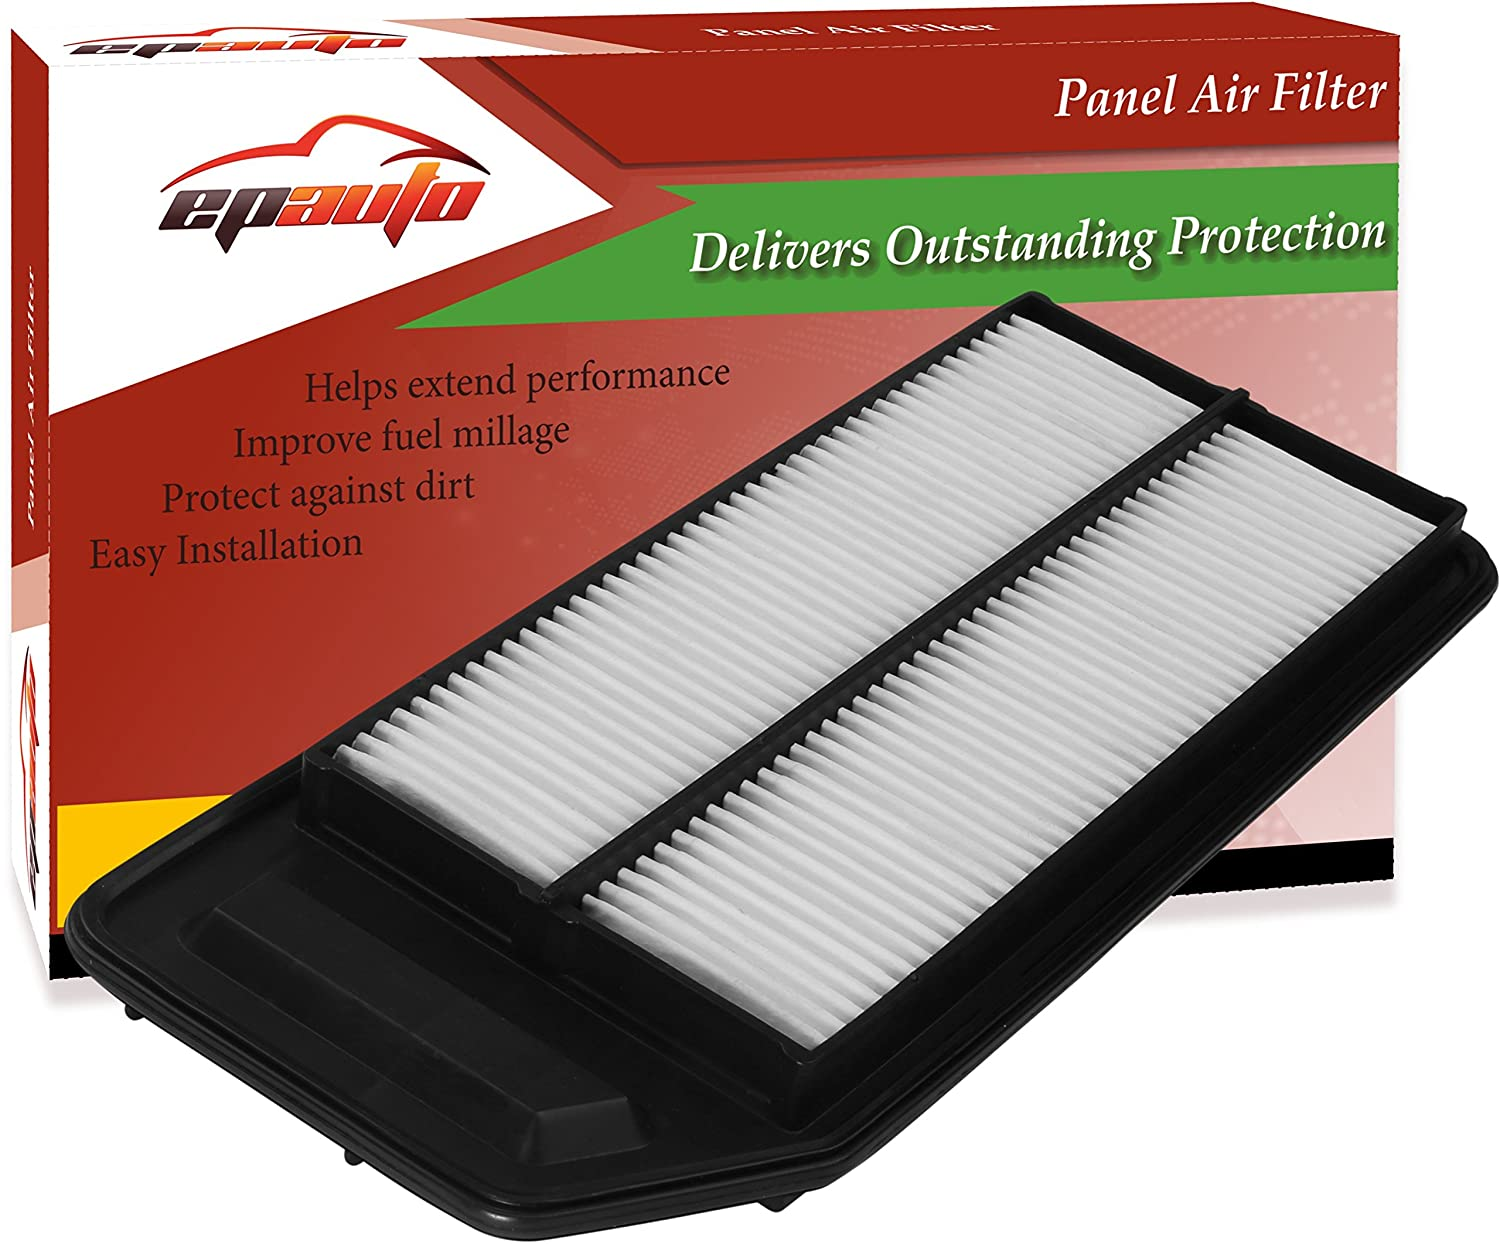 Amazon.com: EPAuto GP564 (CA9564) Honda / Acura Replacement Extra Guard  Rigid Panel Engine Air Filter for Accord L4 (2003-2007), TSX (2004-2008):  Automotive